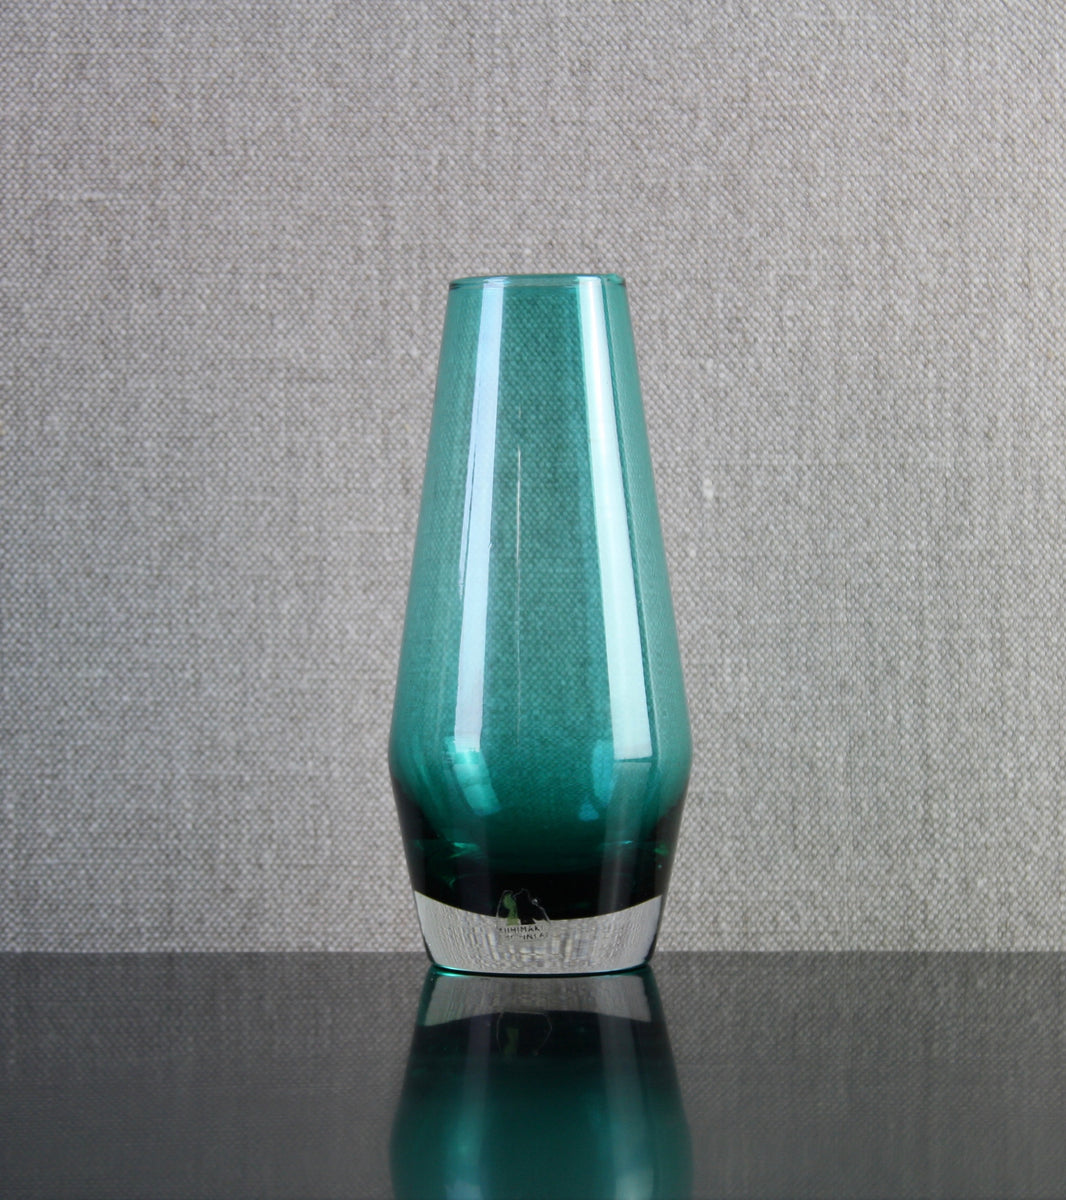 Teal 'Tapered' Vase by Tamara Aladin, C. 1970